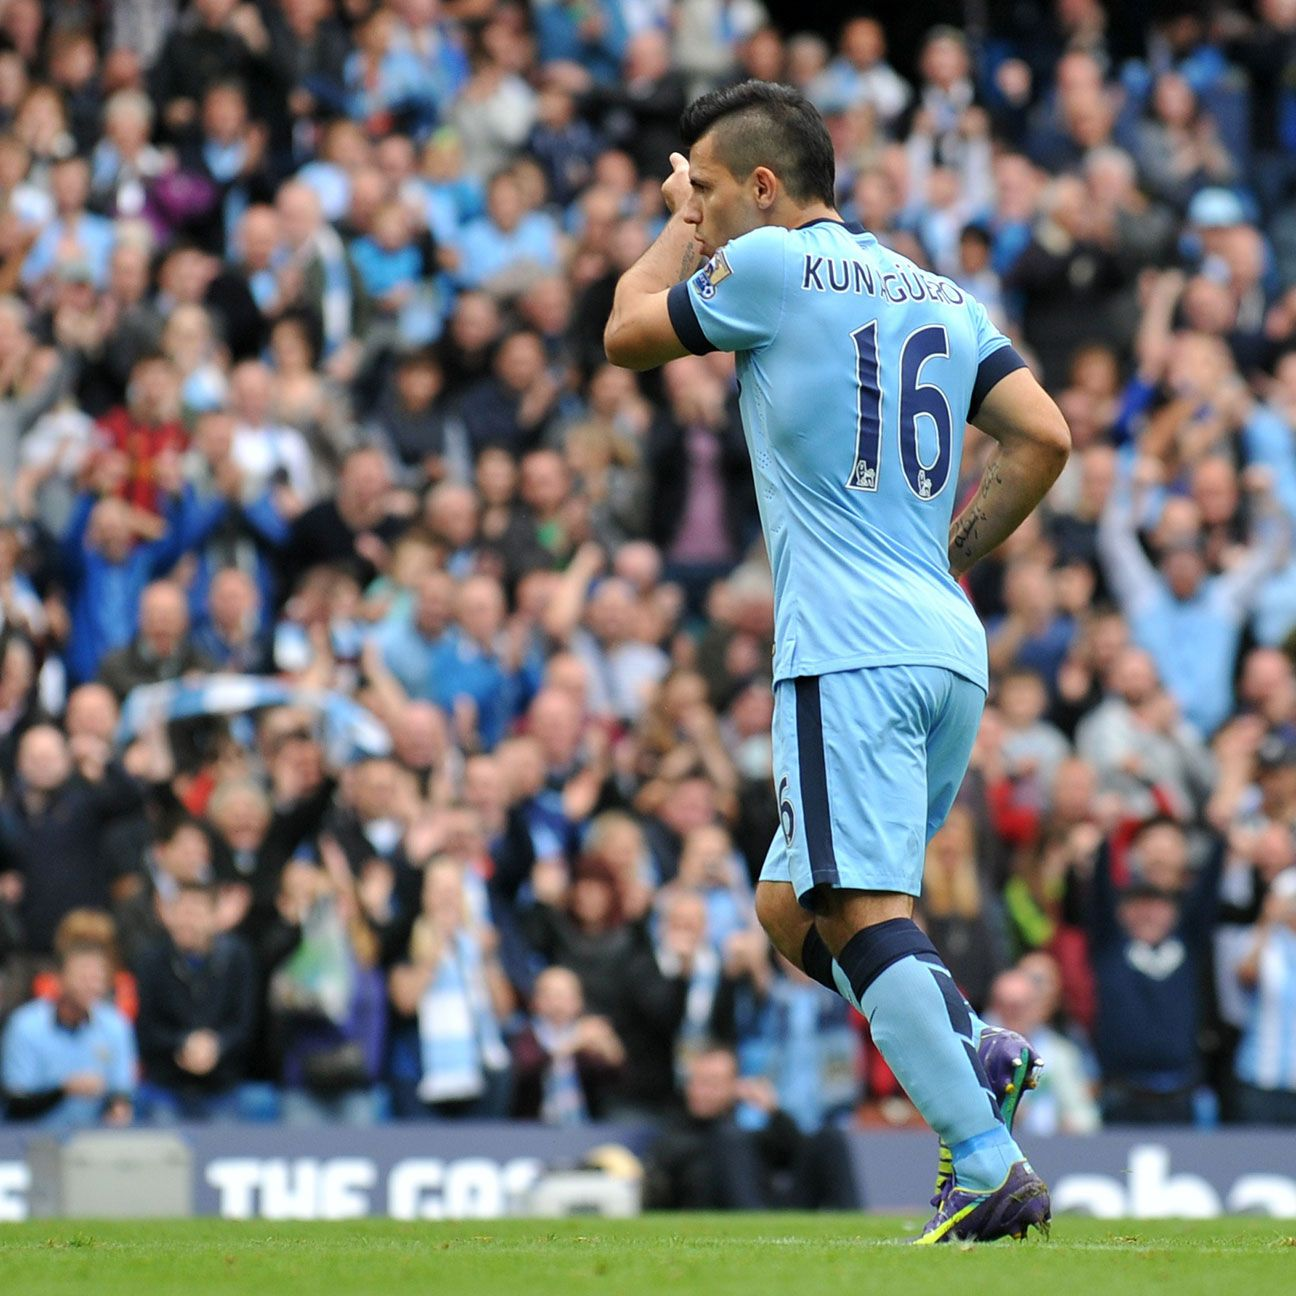 The red-hot Sergio Aguero of Manchester City is a logical choice to be a fantasy captain.